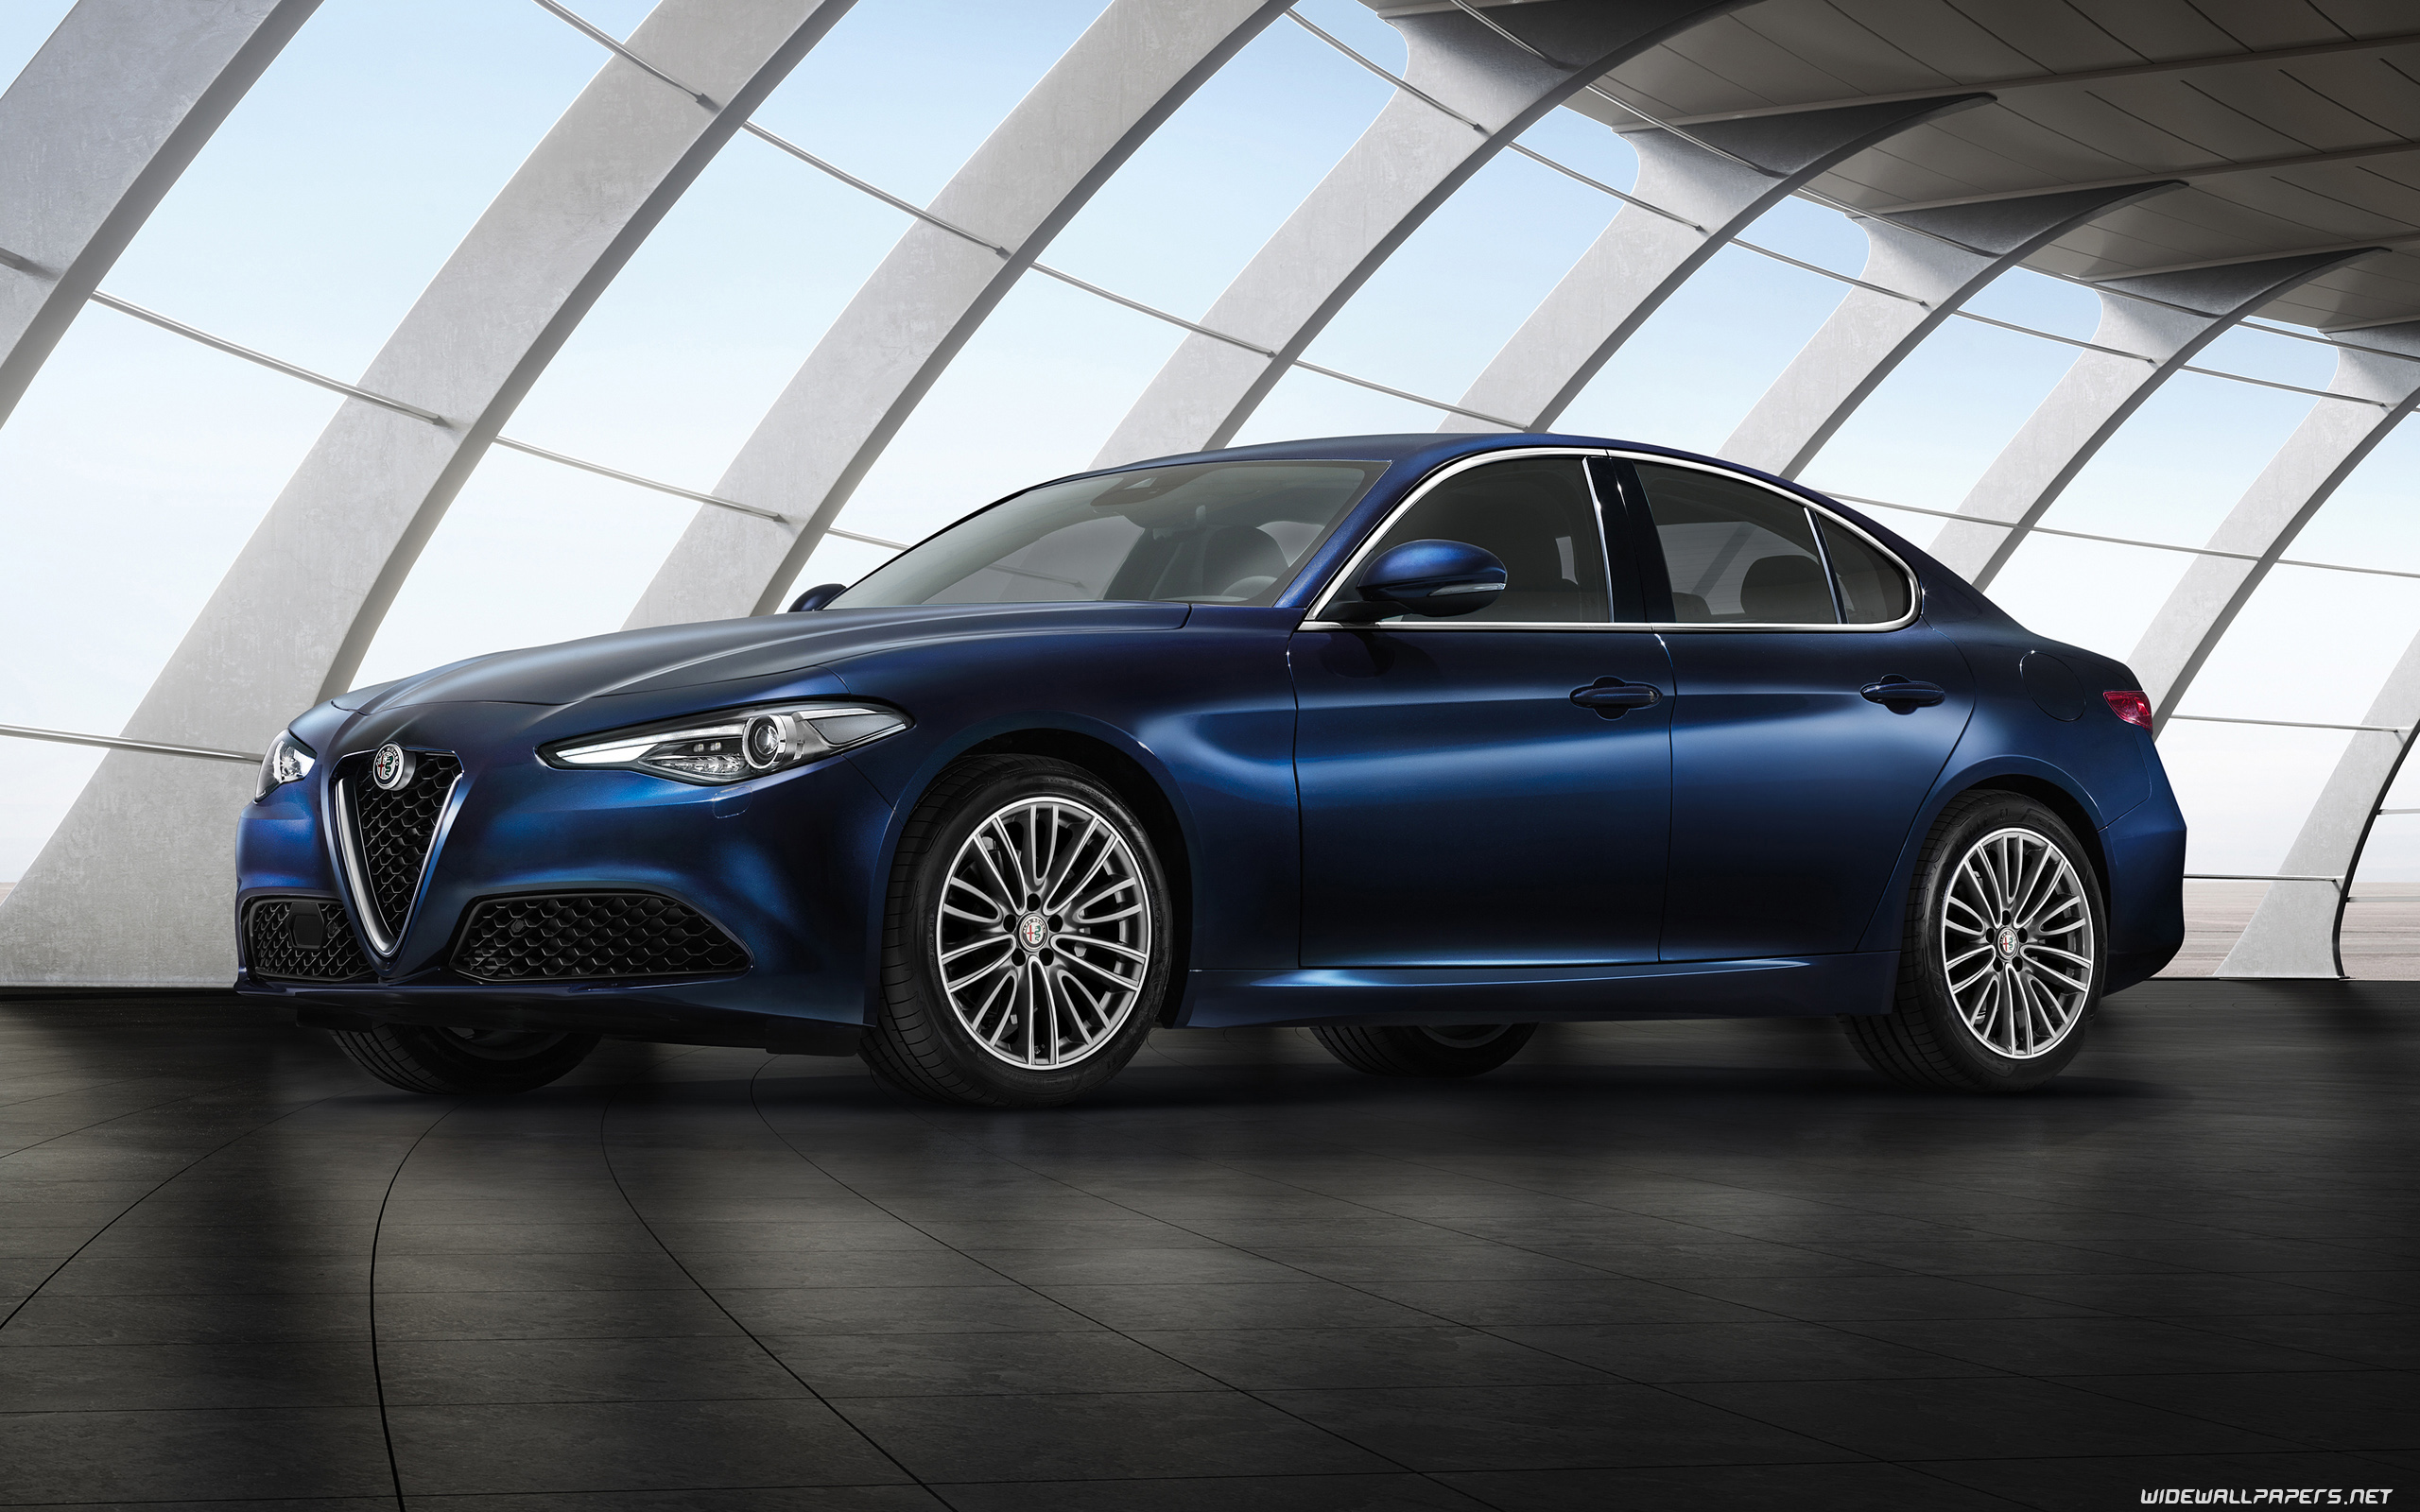 Alfa Romeo Giulia Cars Desktop Wallpapers 4k Ultra Hd